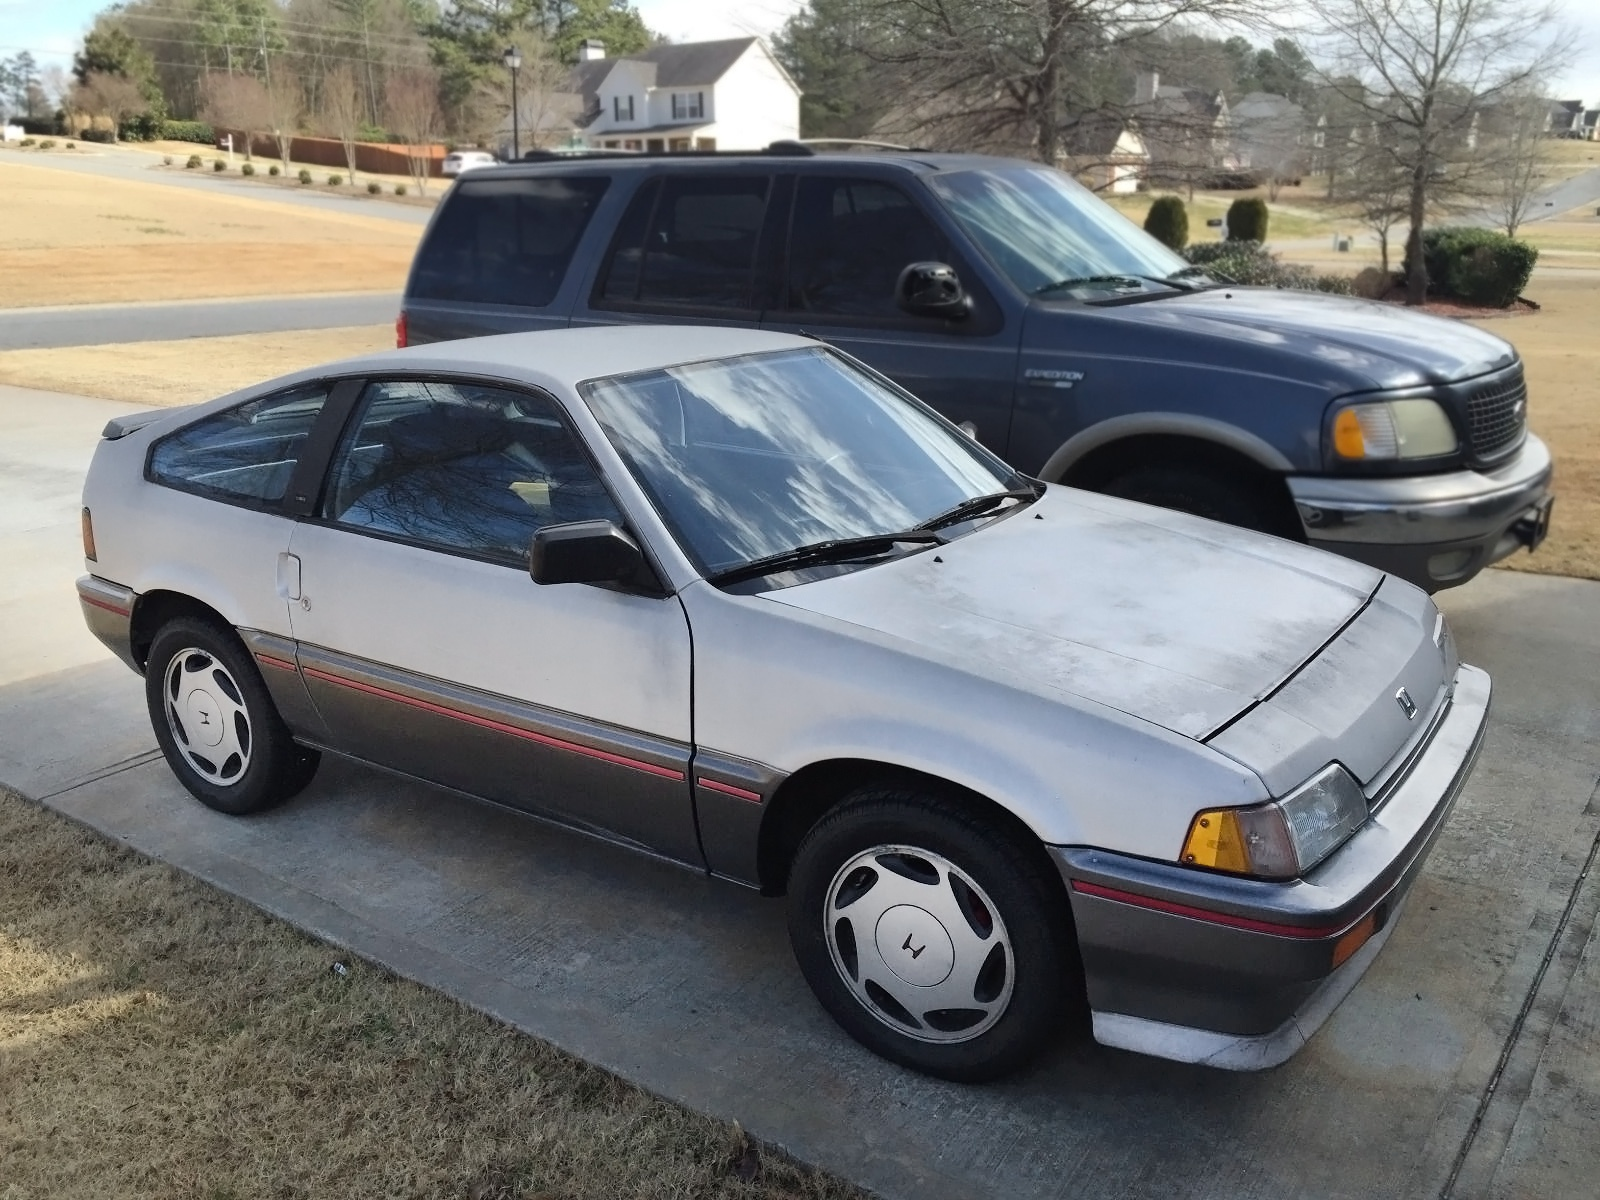 50 Smiles Per Gallon: 1987 Honda CRX HF